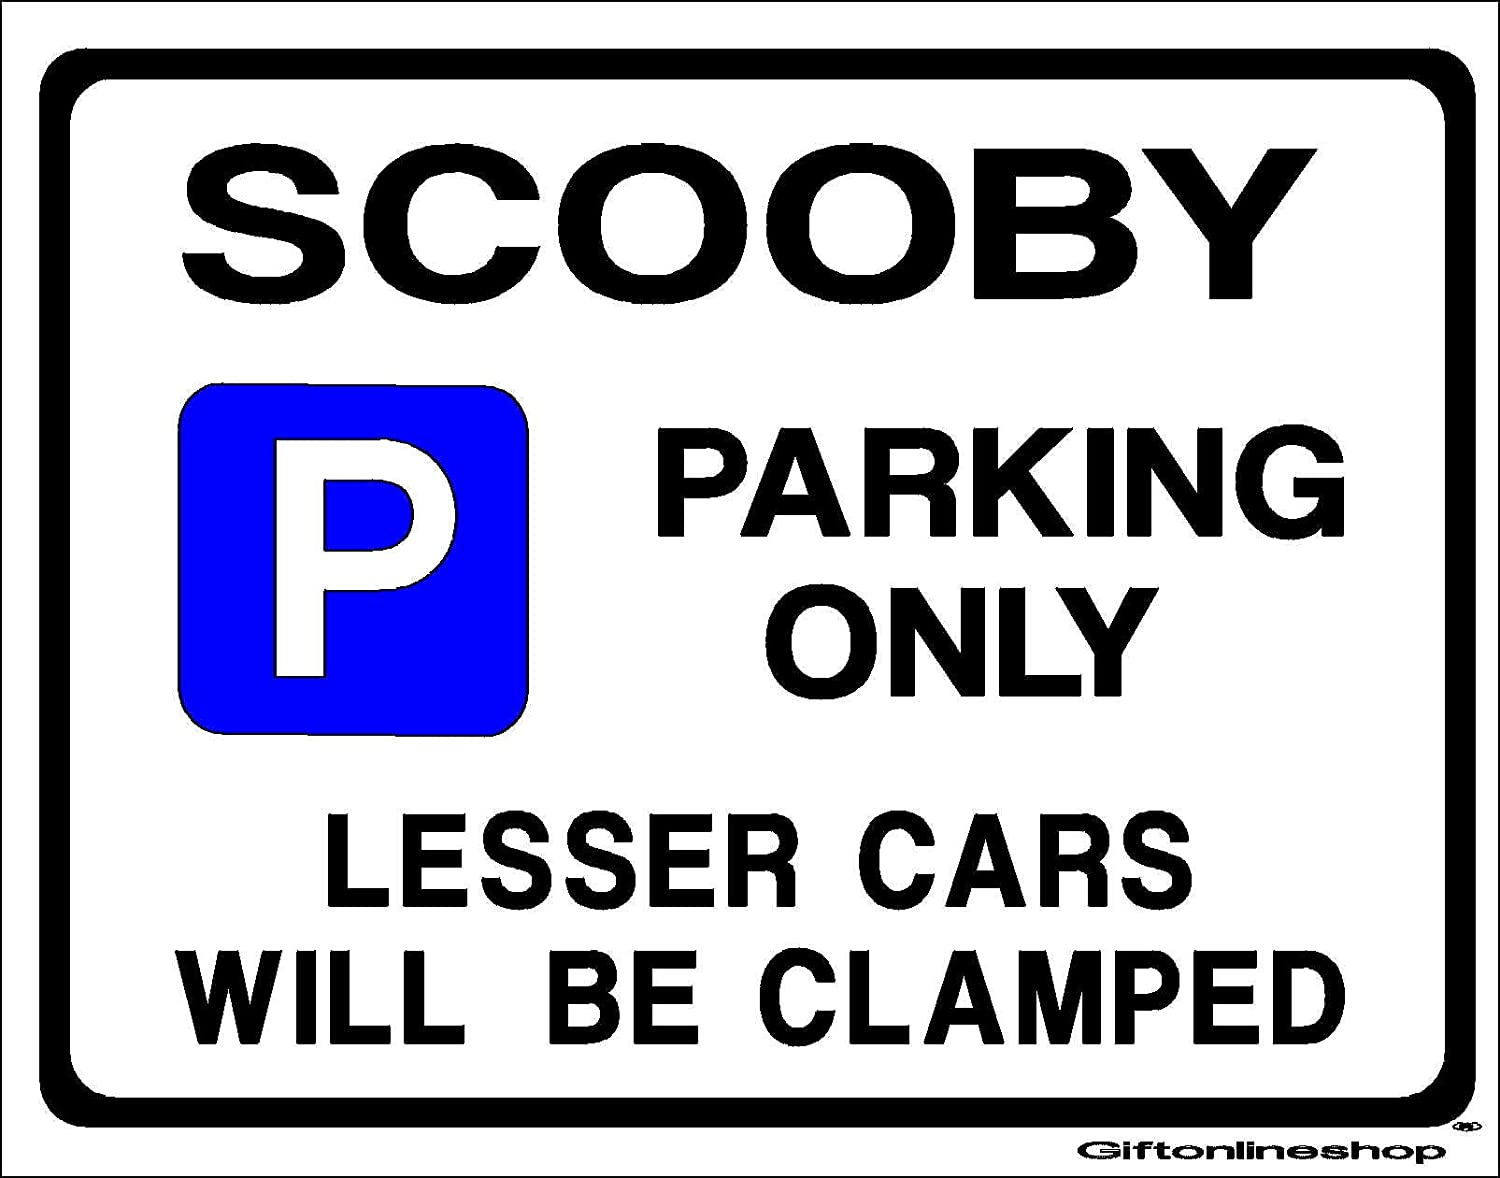 Extra Large Size 205 x 270mm By Custom Made All fixing included Gift for Subaru Impreza WRX sti car models Made in UK SCOOBY Parking Sign